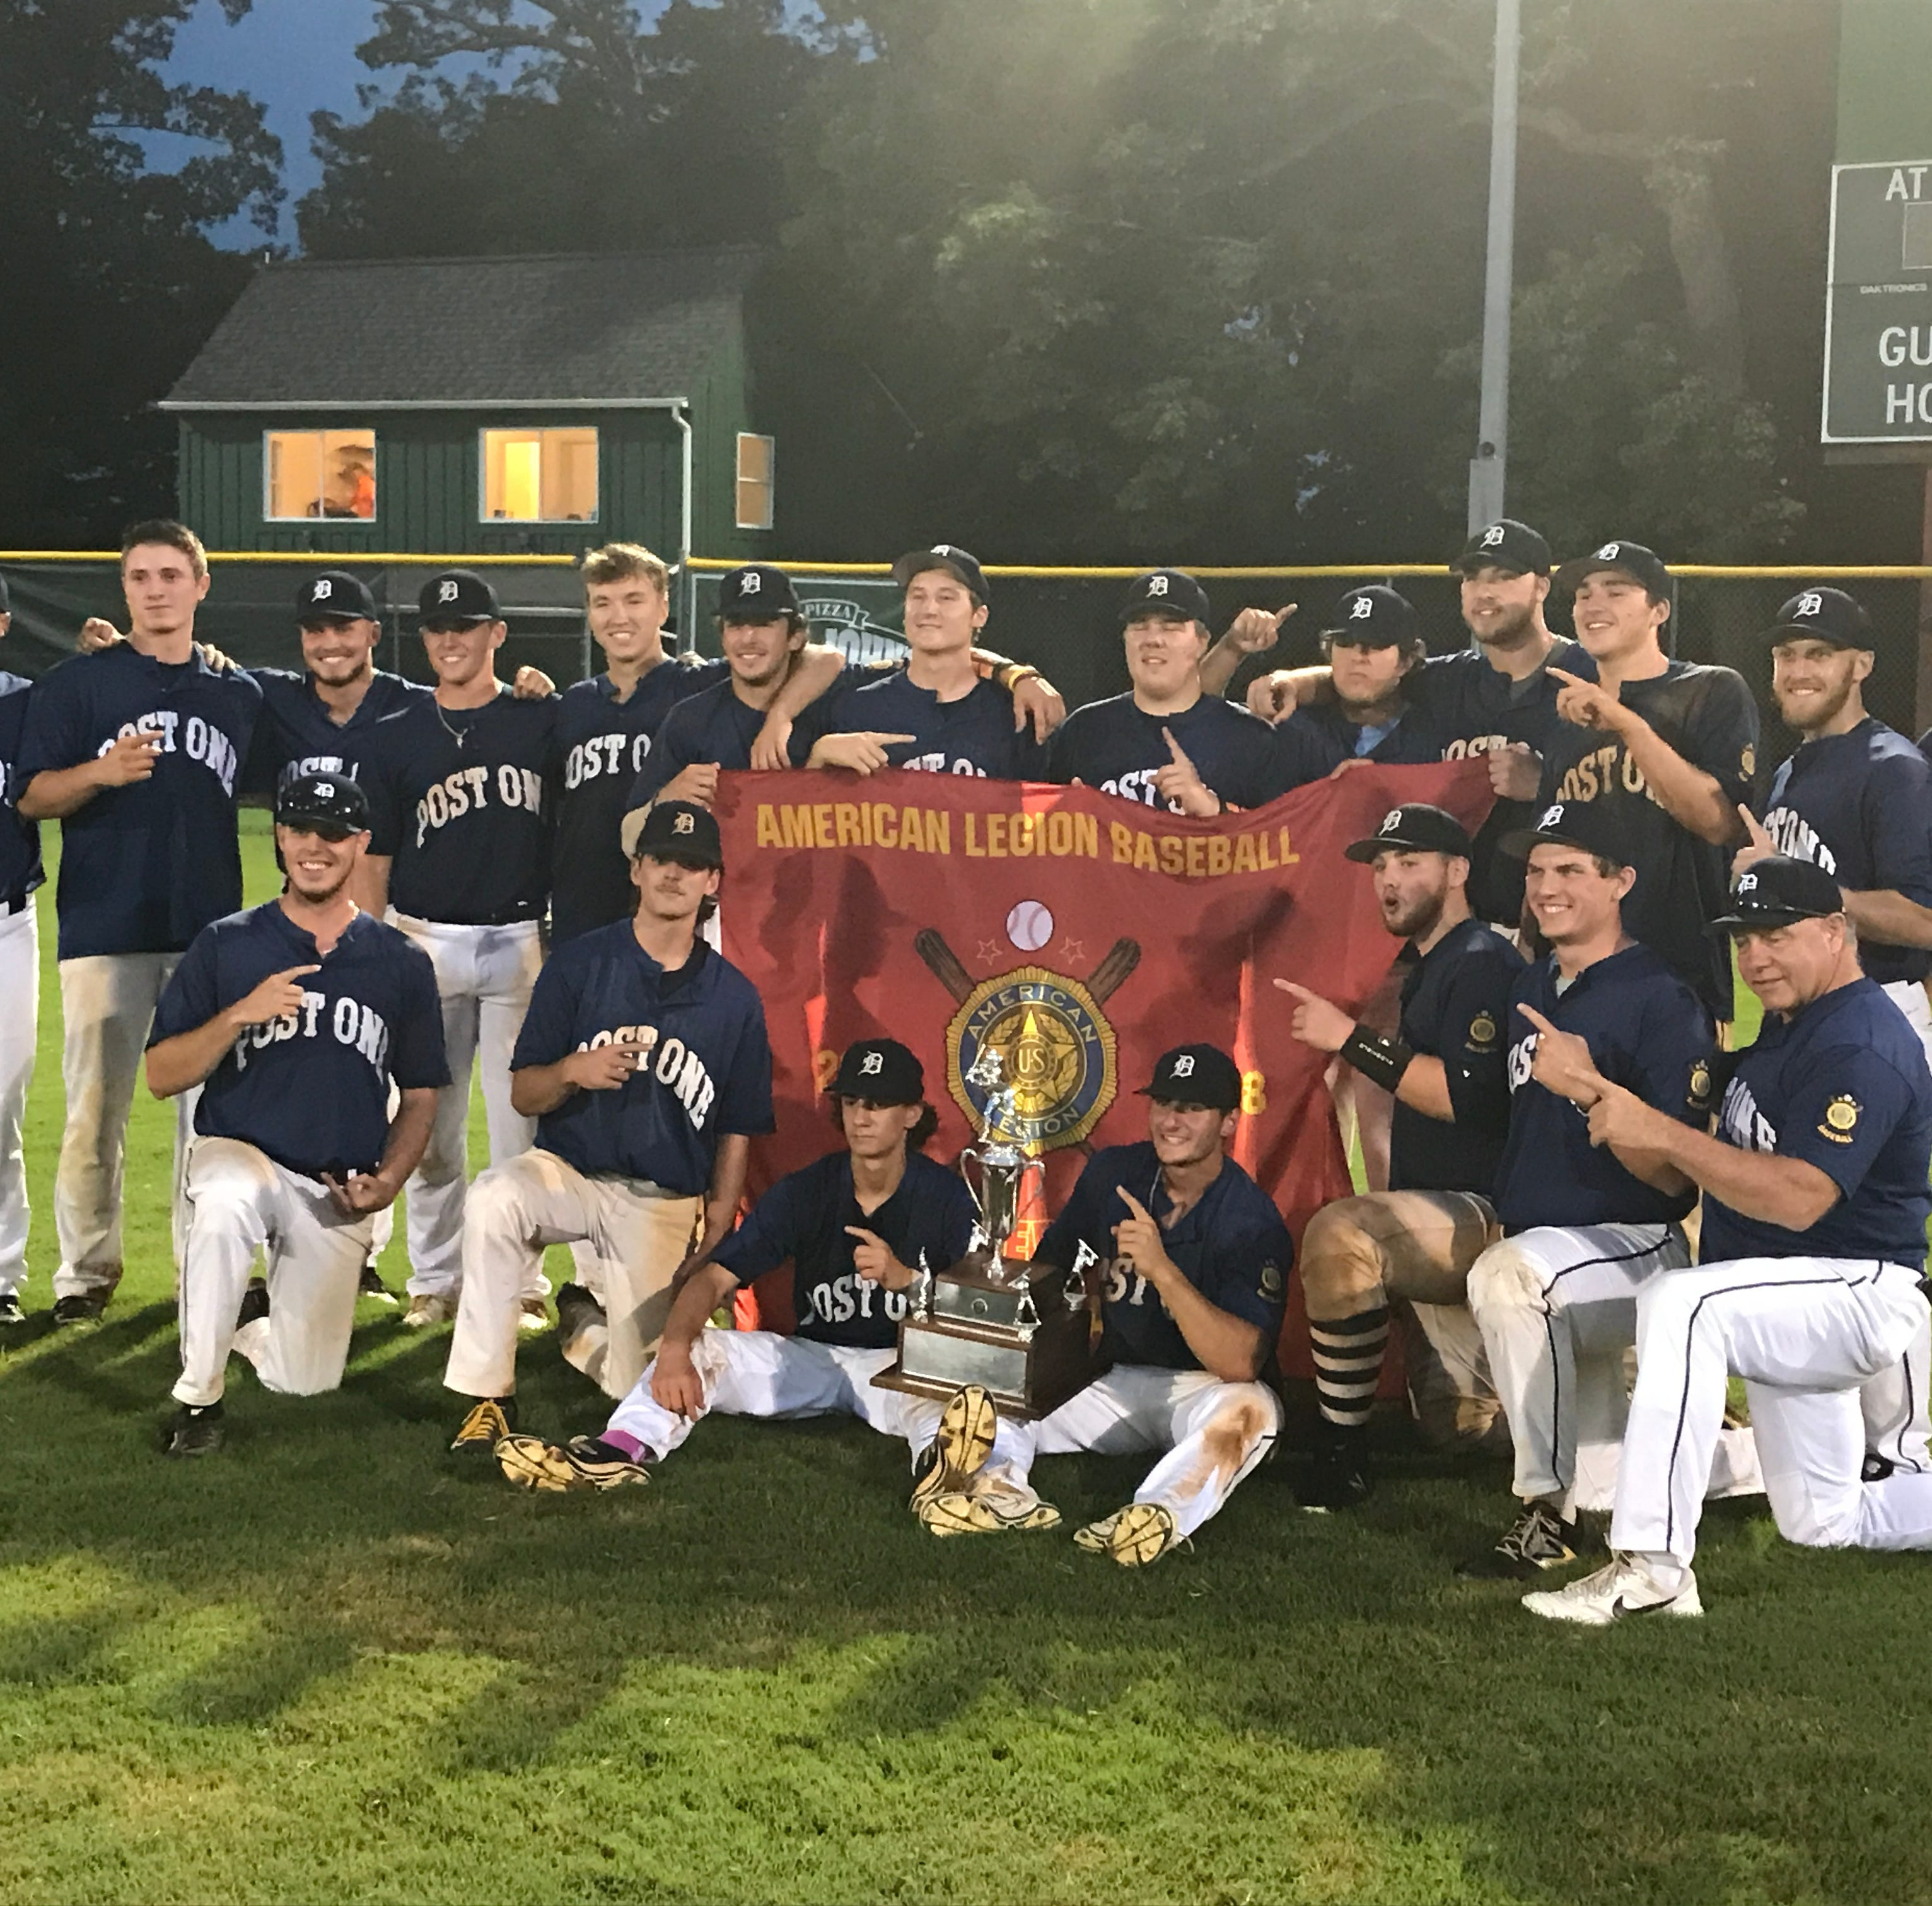 Delaware champs win Mid-Atlantic title, reach American Legion World Series